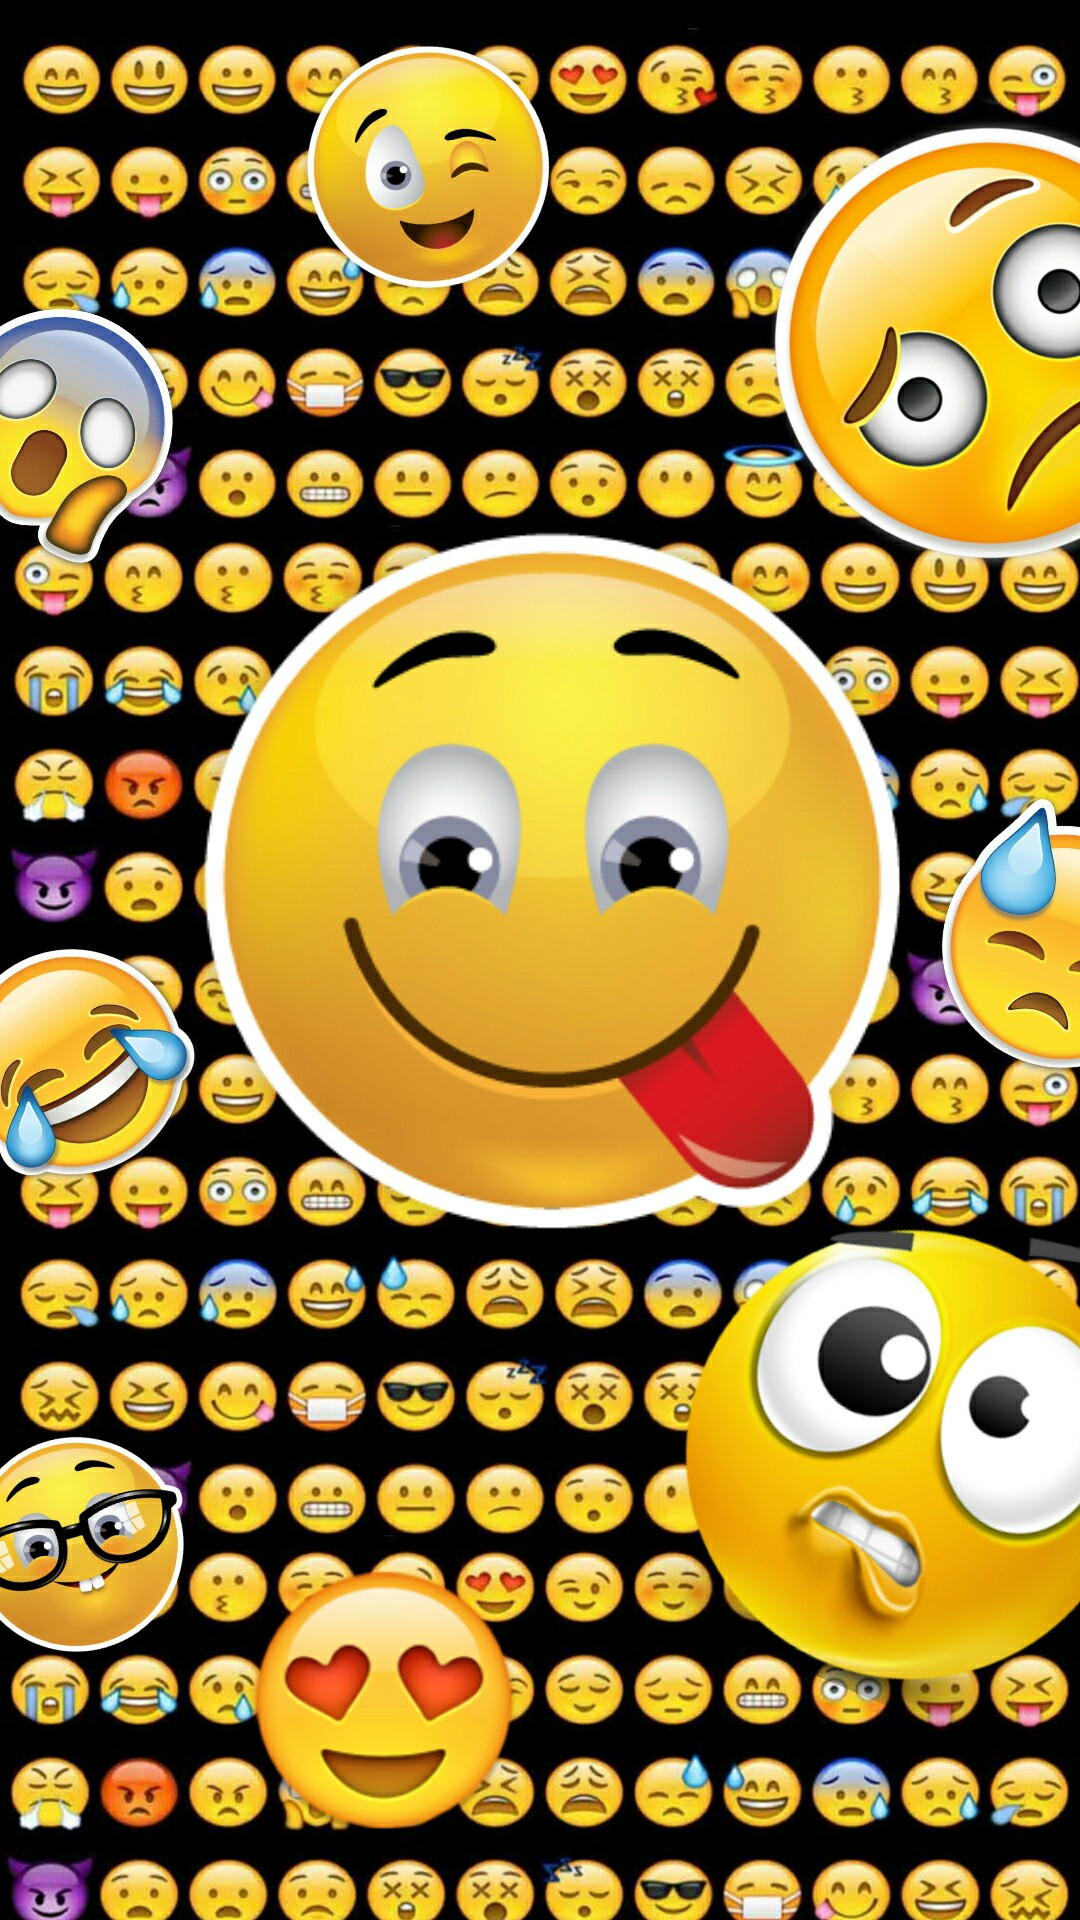 Cute Girly Laptop Wallpapers Fondos De Pantalla De Emojis